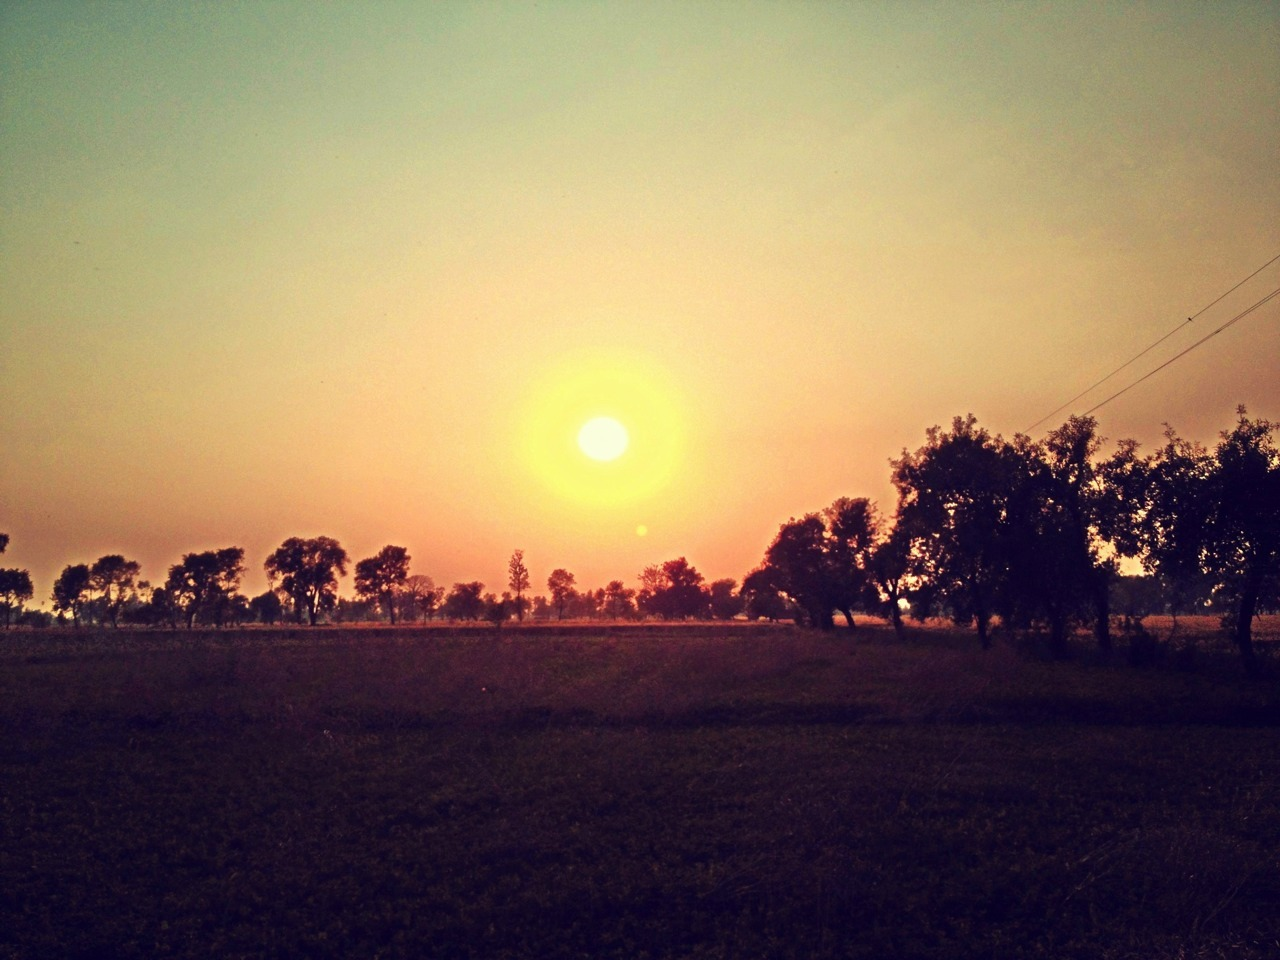 Sunset in Lahore, Pakistan